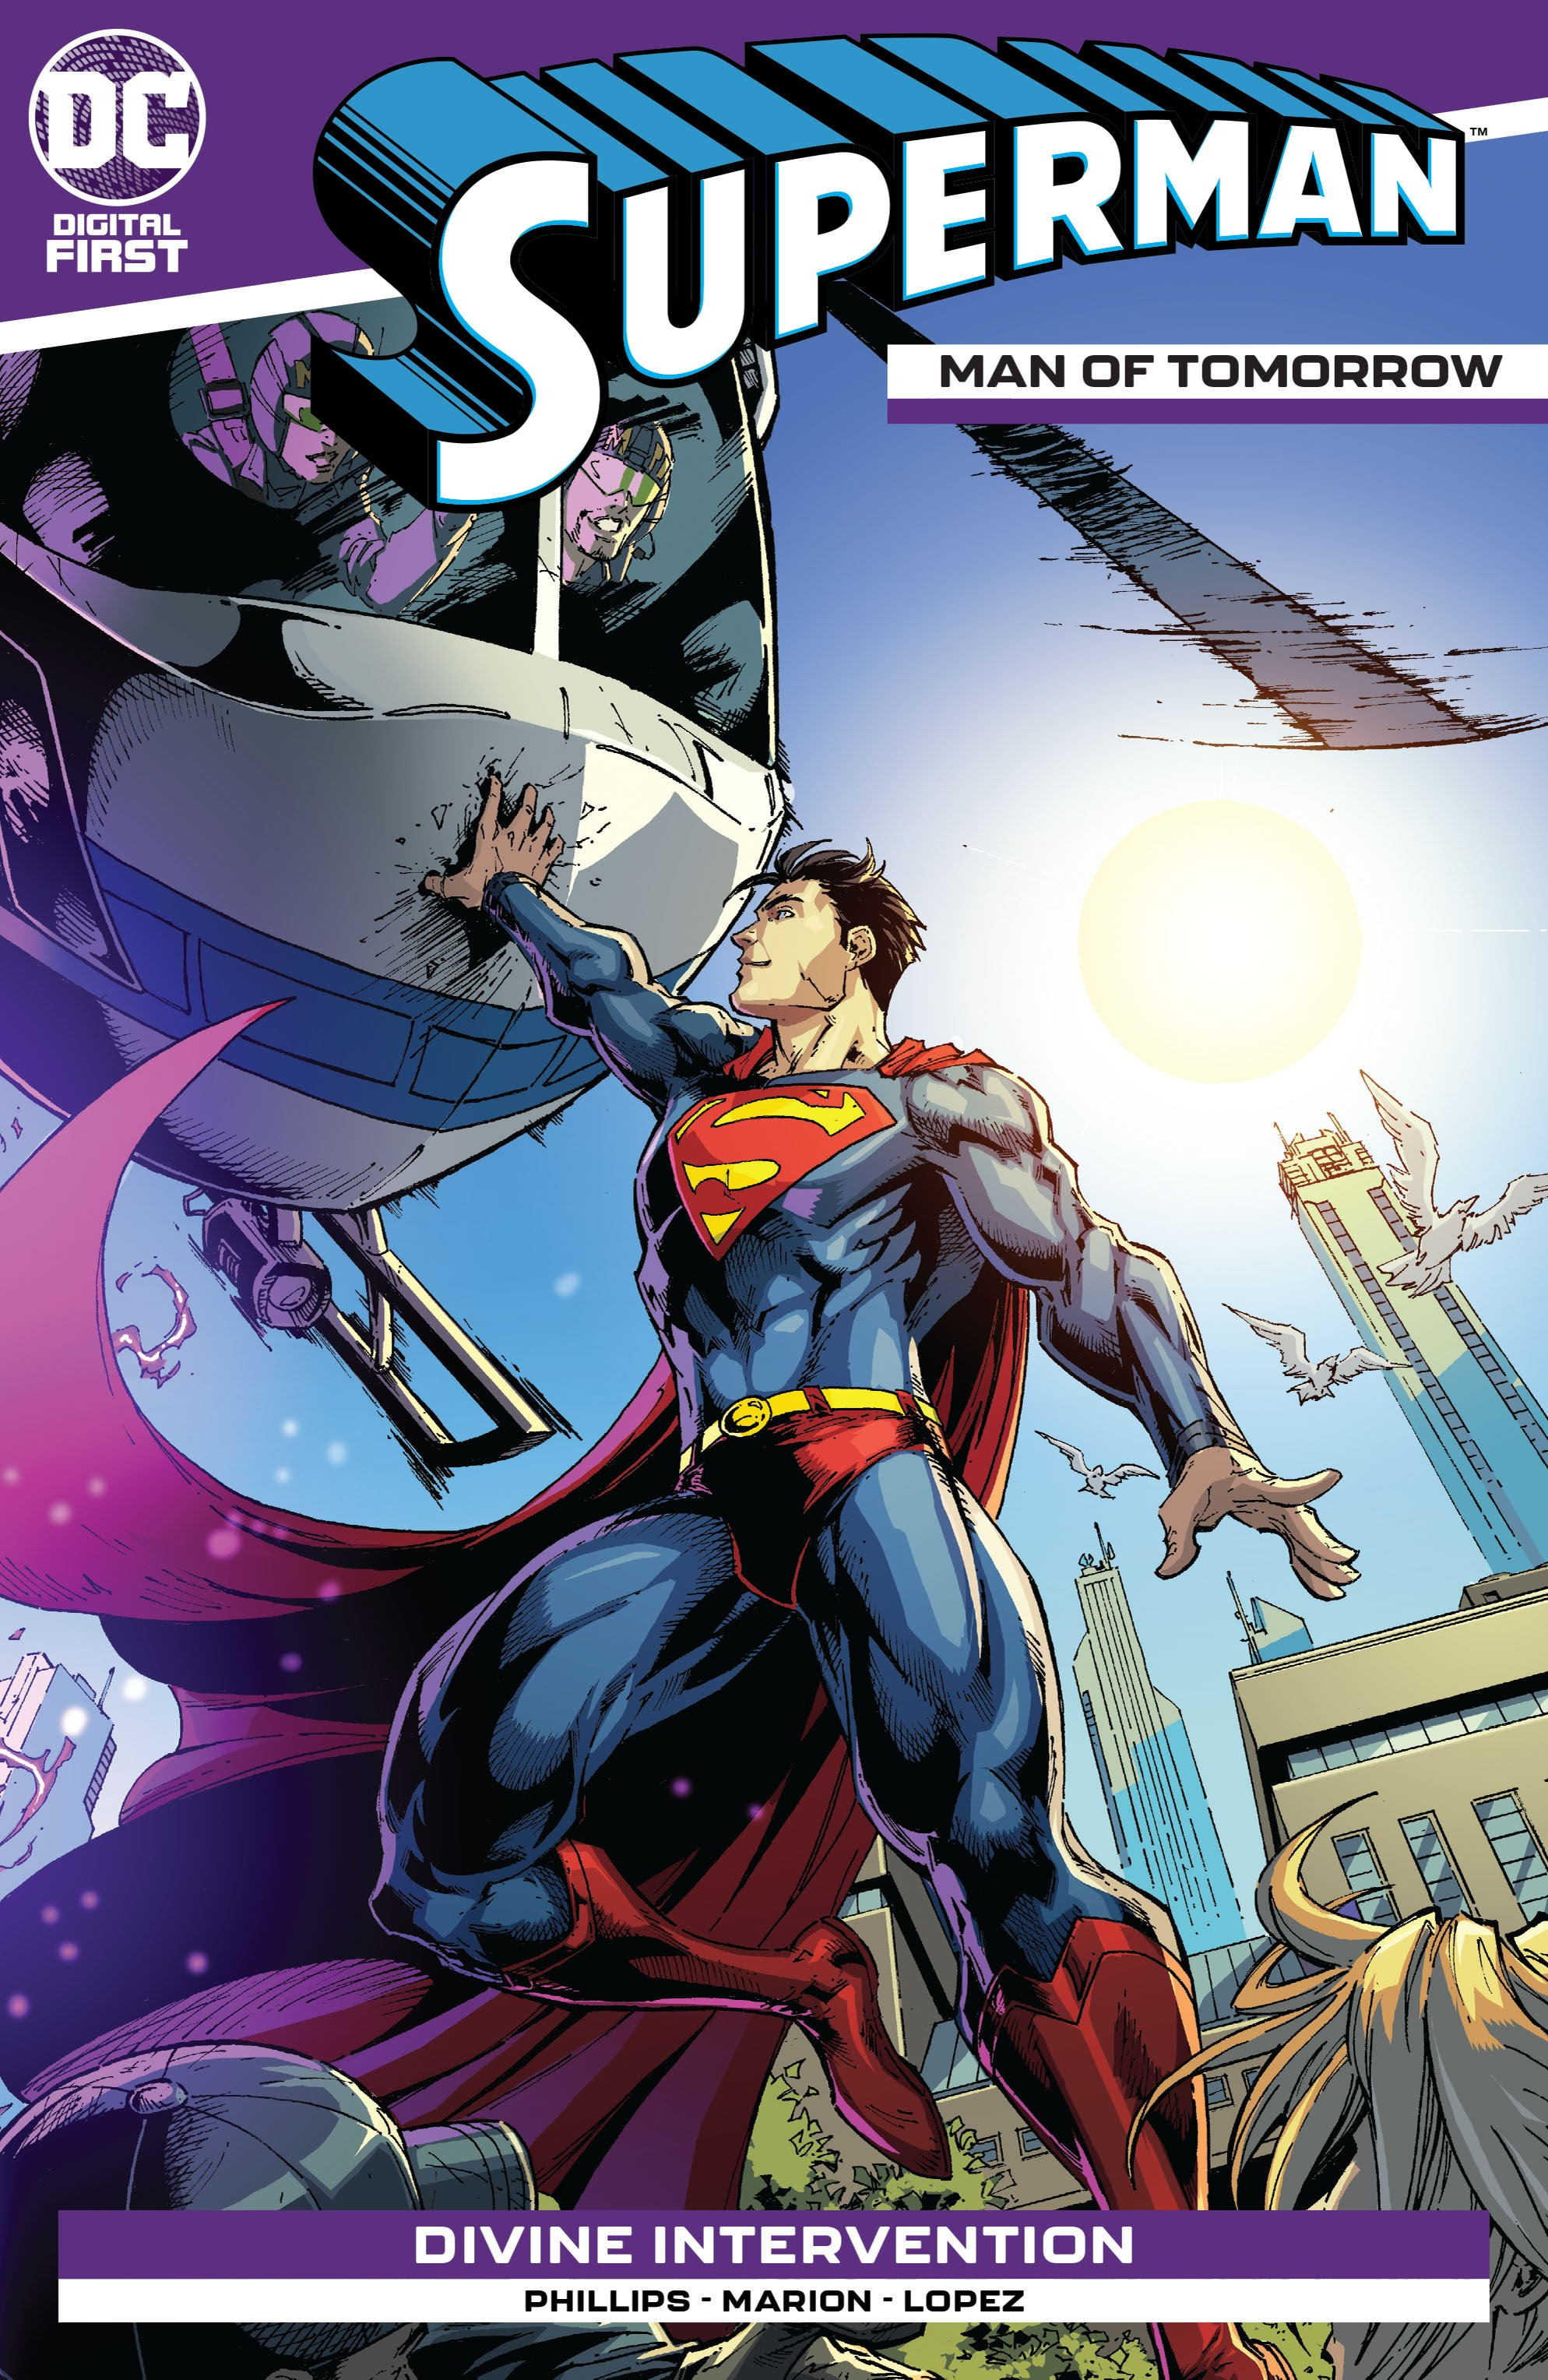 Superman: Man of Tomorrow #17 The Aspiring Kryptonian